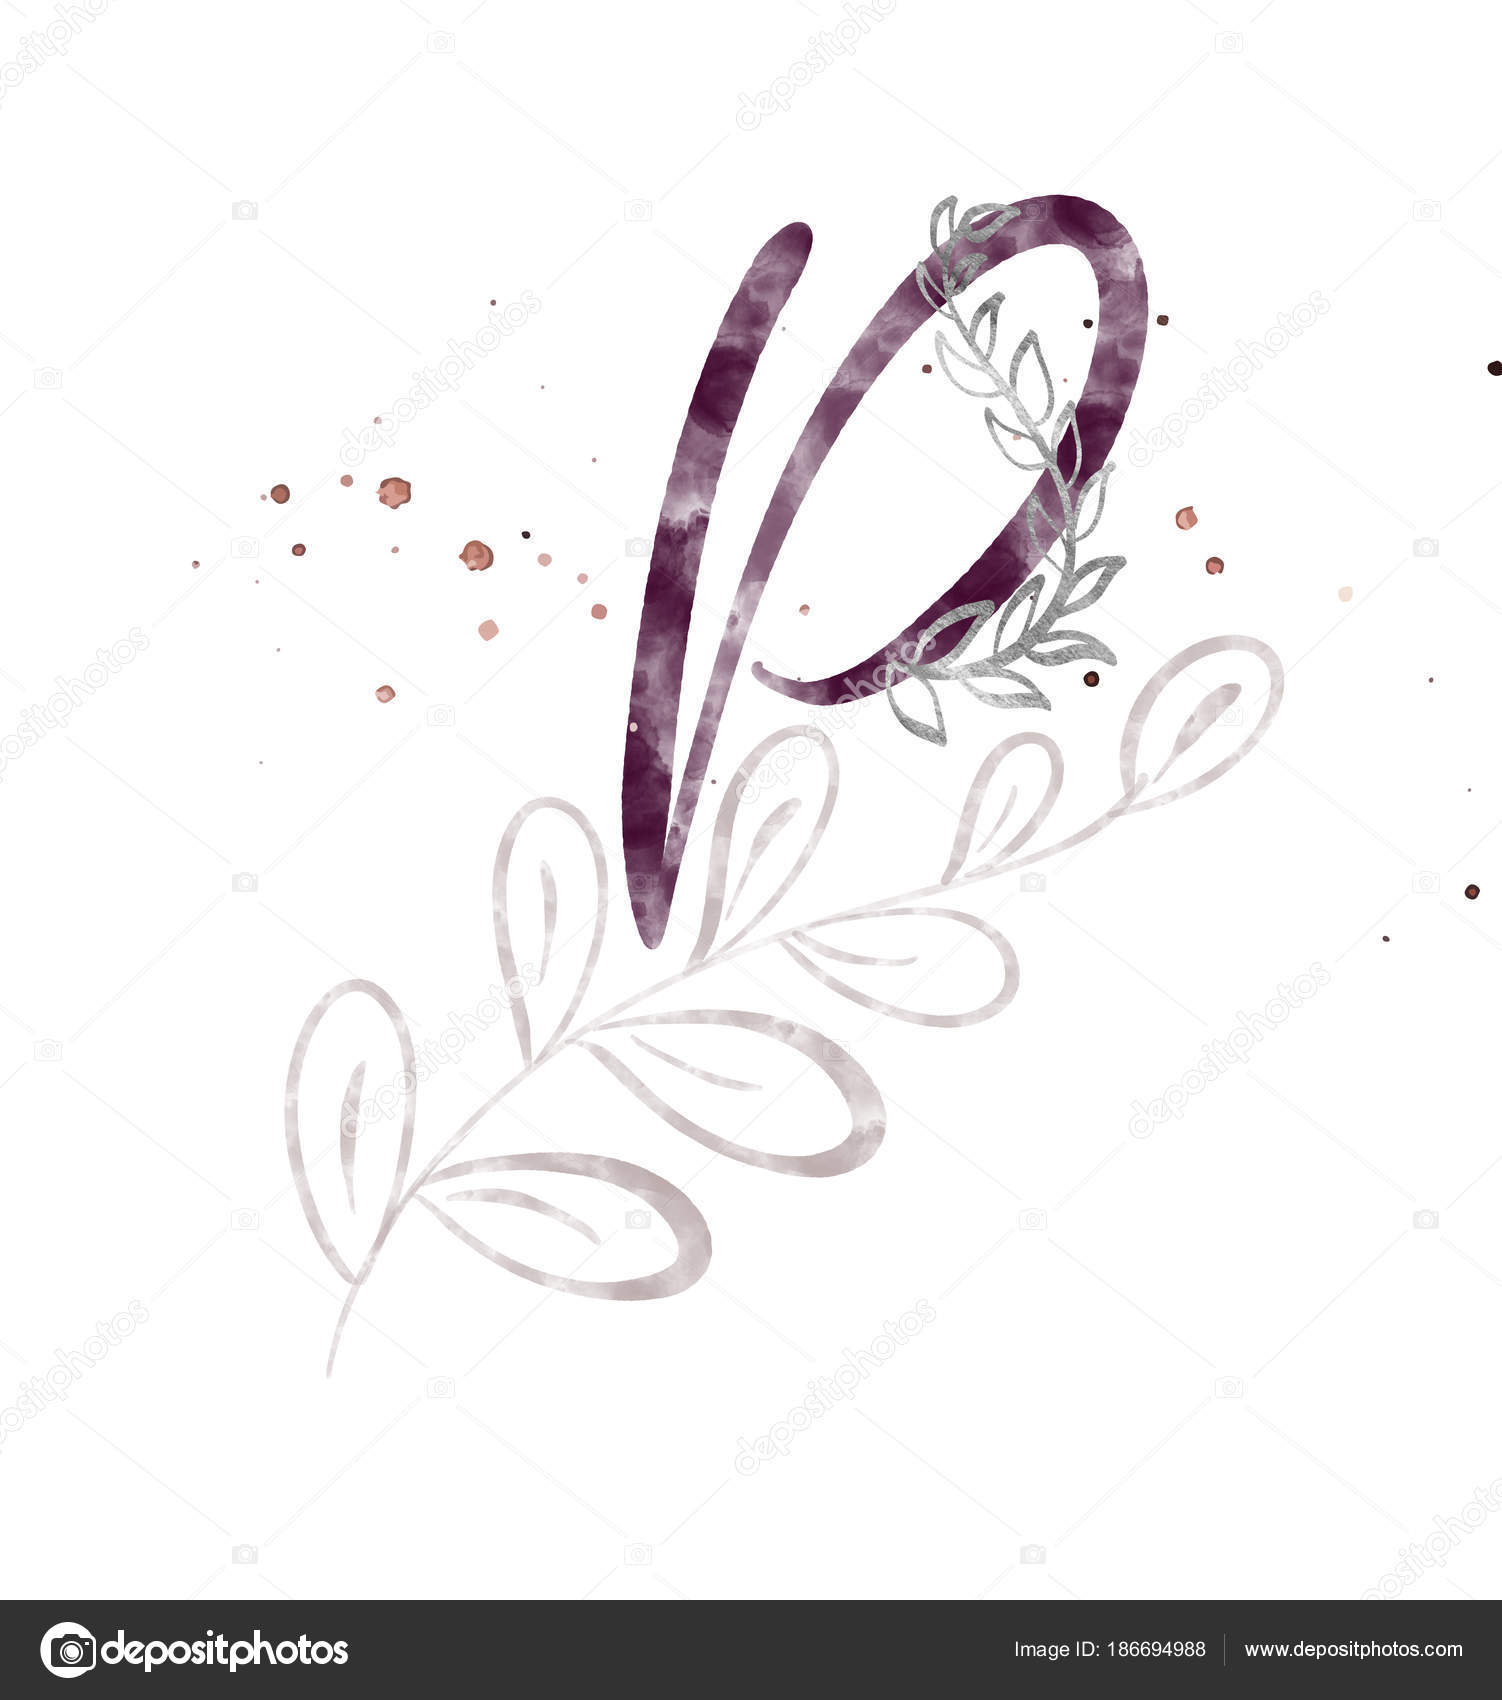 free download script fonts for wedding